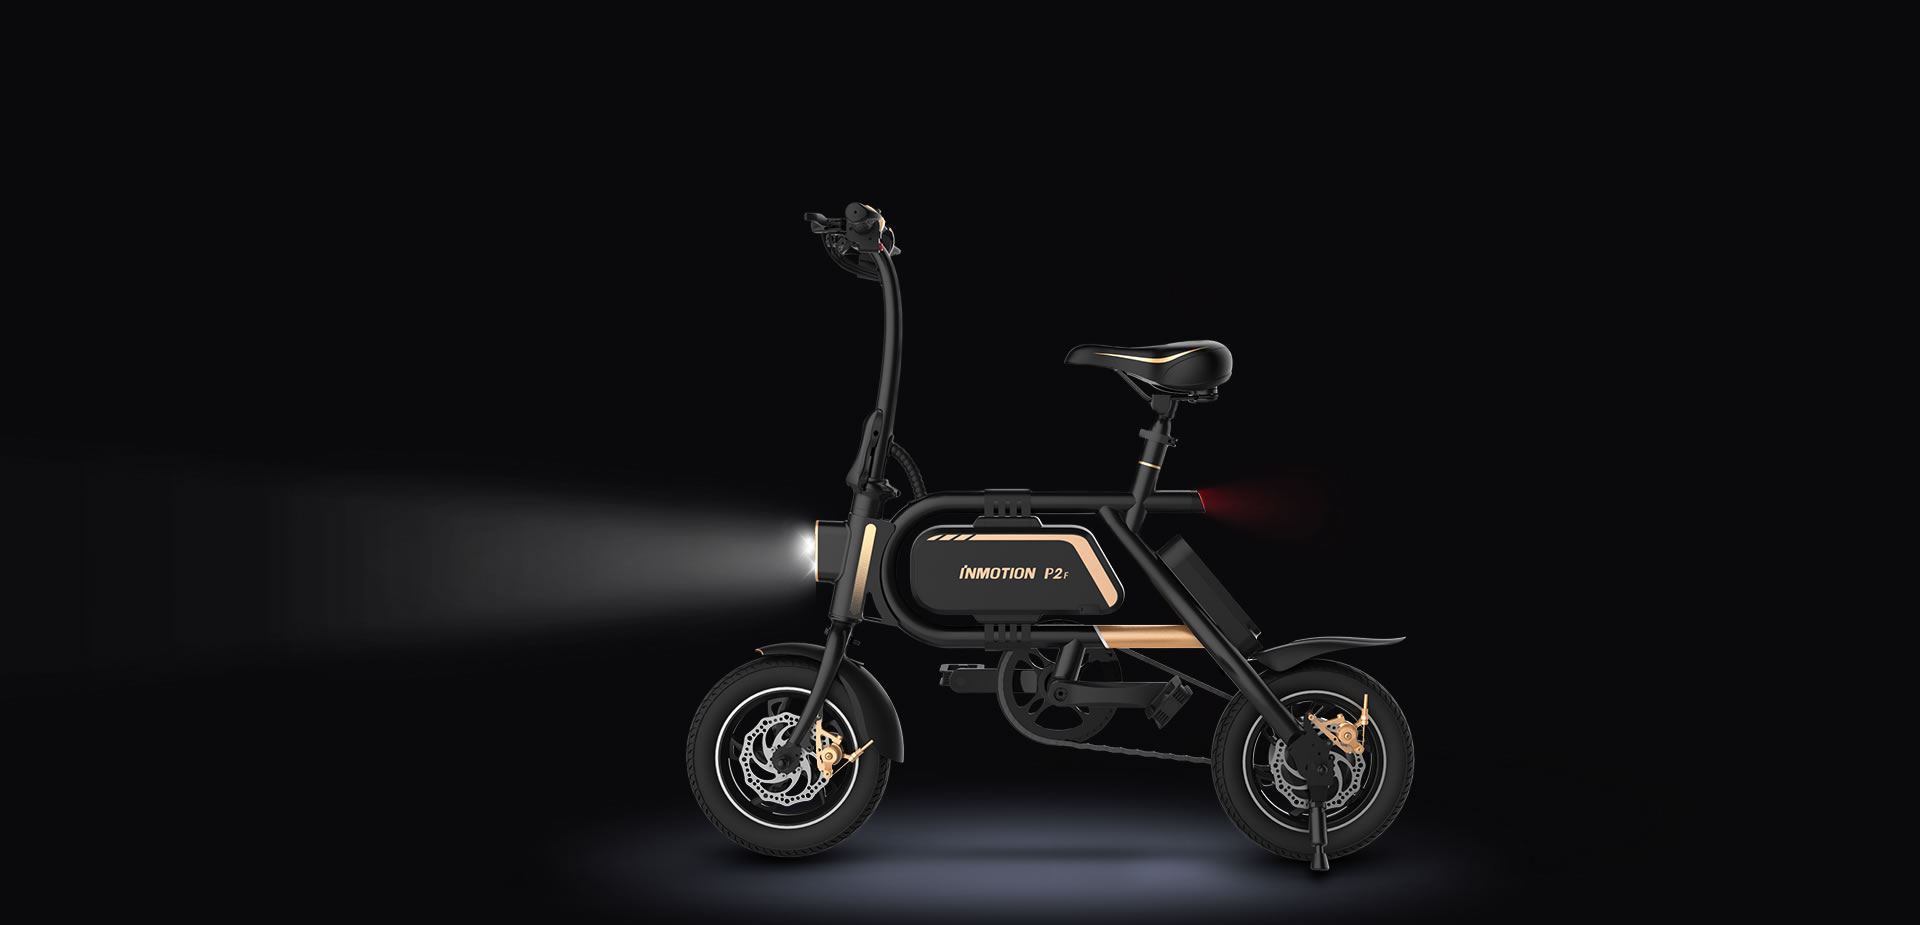 Mini-scooter P2/P2F